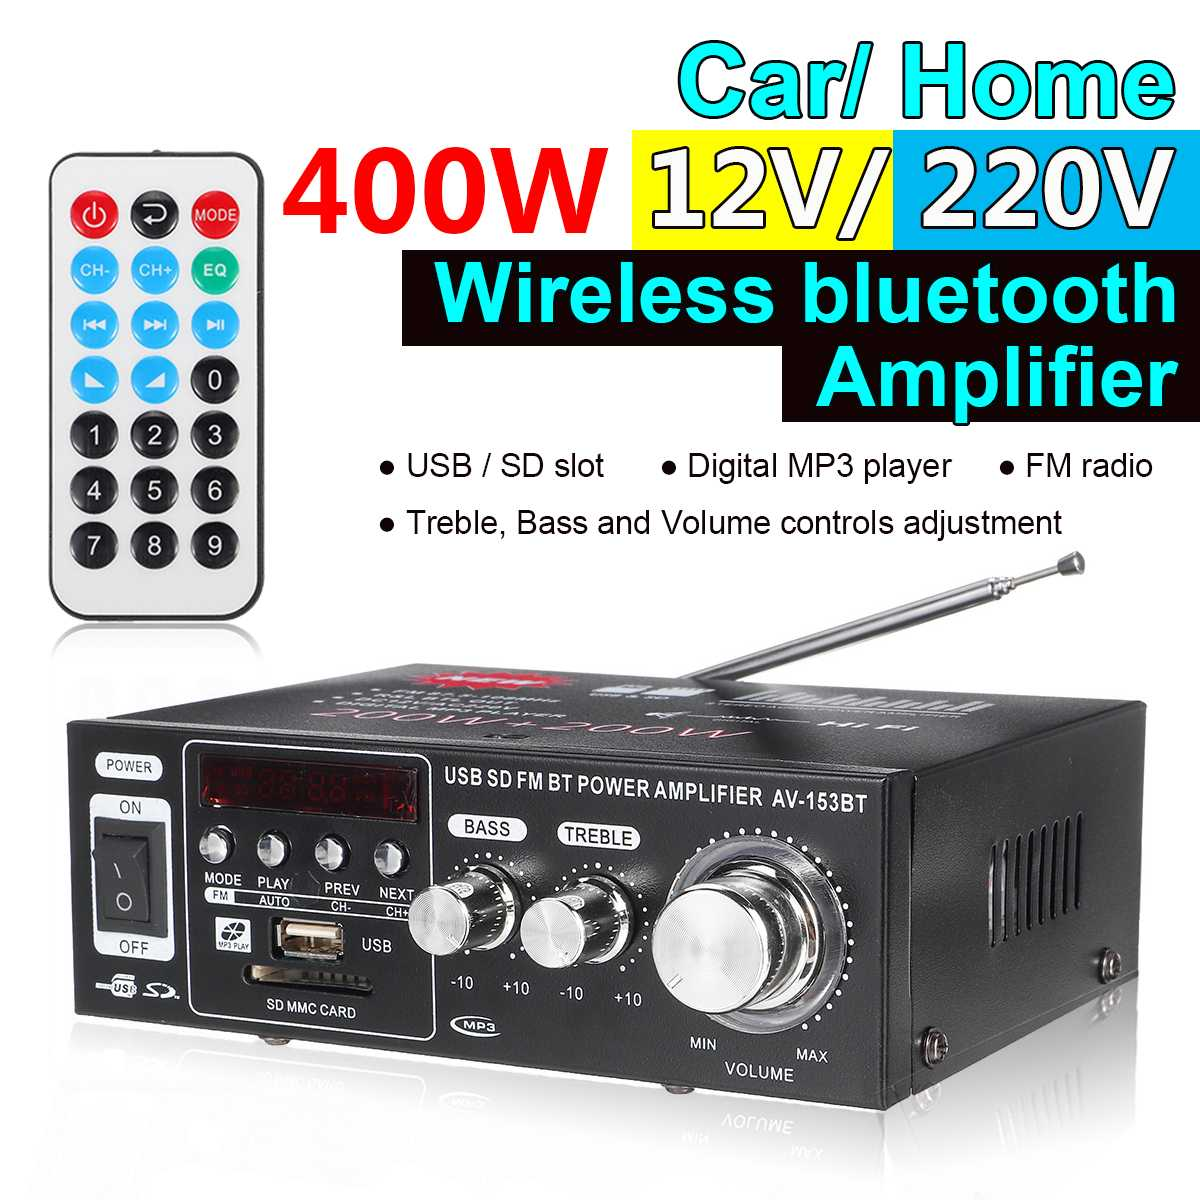 Audew 400W bluetooth Audio Stereo Digital Amplifier HIFI USB FM SD Home Car Amplifiers 220V/12V Full Function Infrared Control